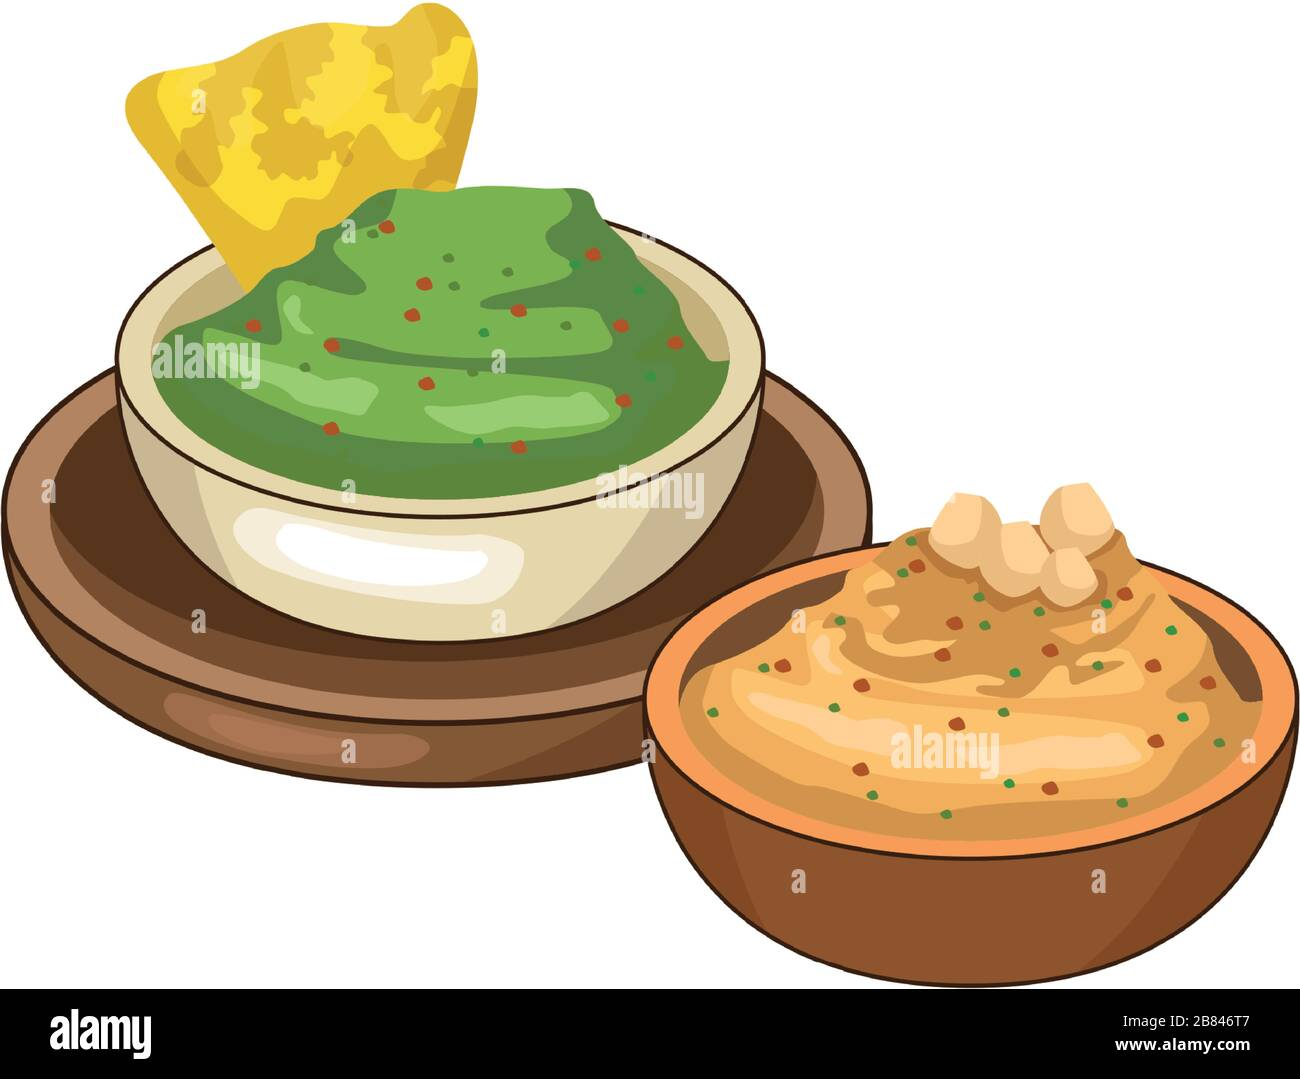 Mexican Food Clipart High Resolution Stock Photography And Images Alamy